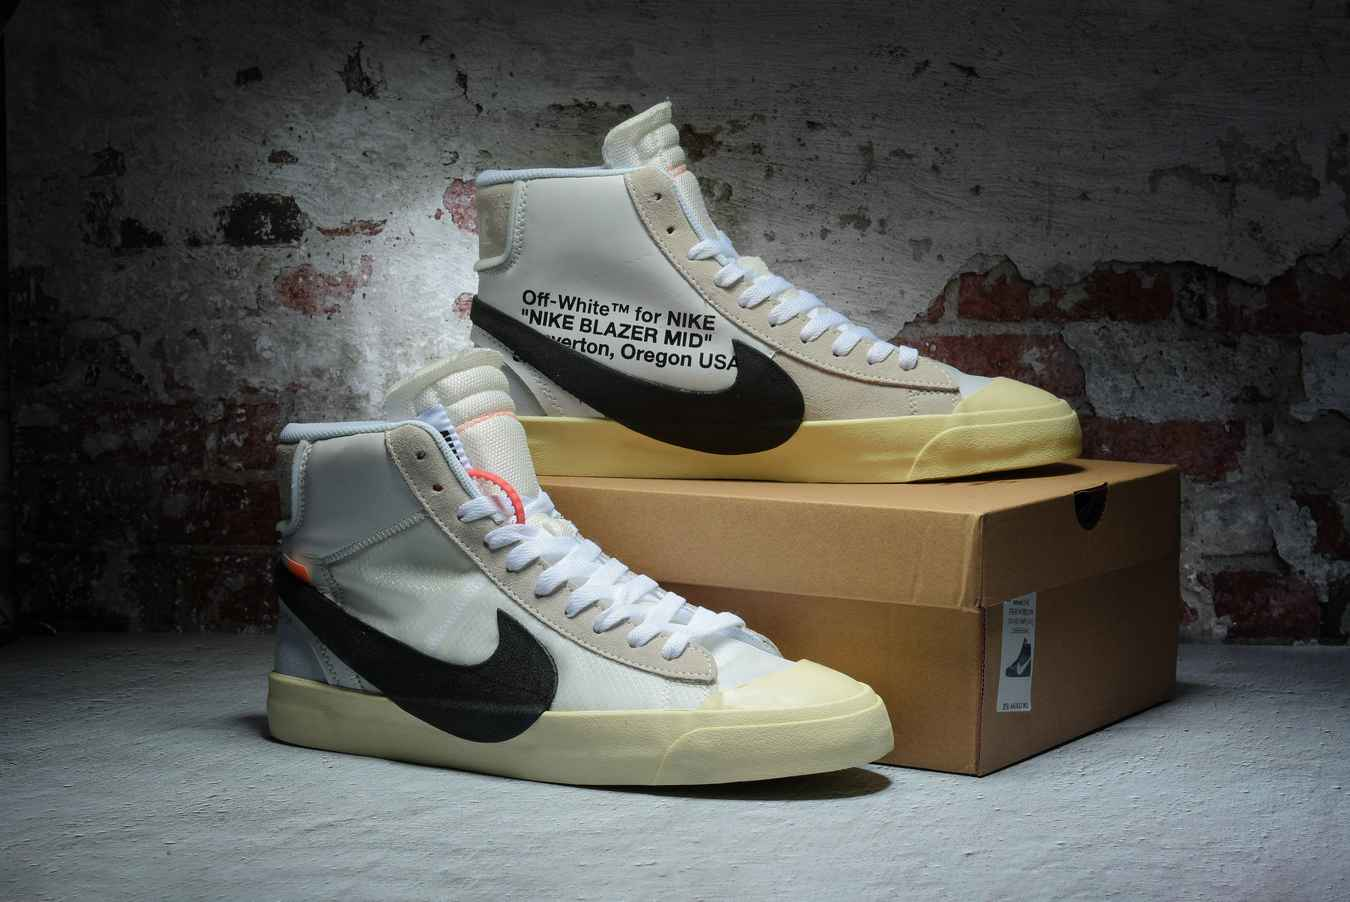 OFF-WHITE x Nike Blazer Mid 'The Ten' AA3832 100